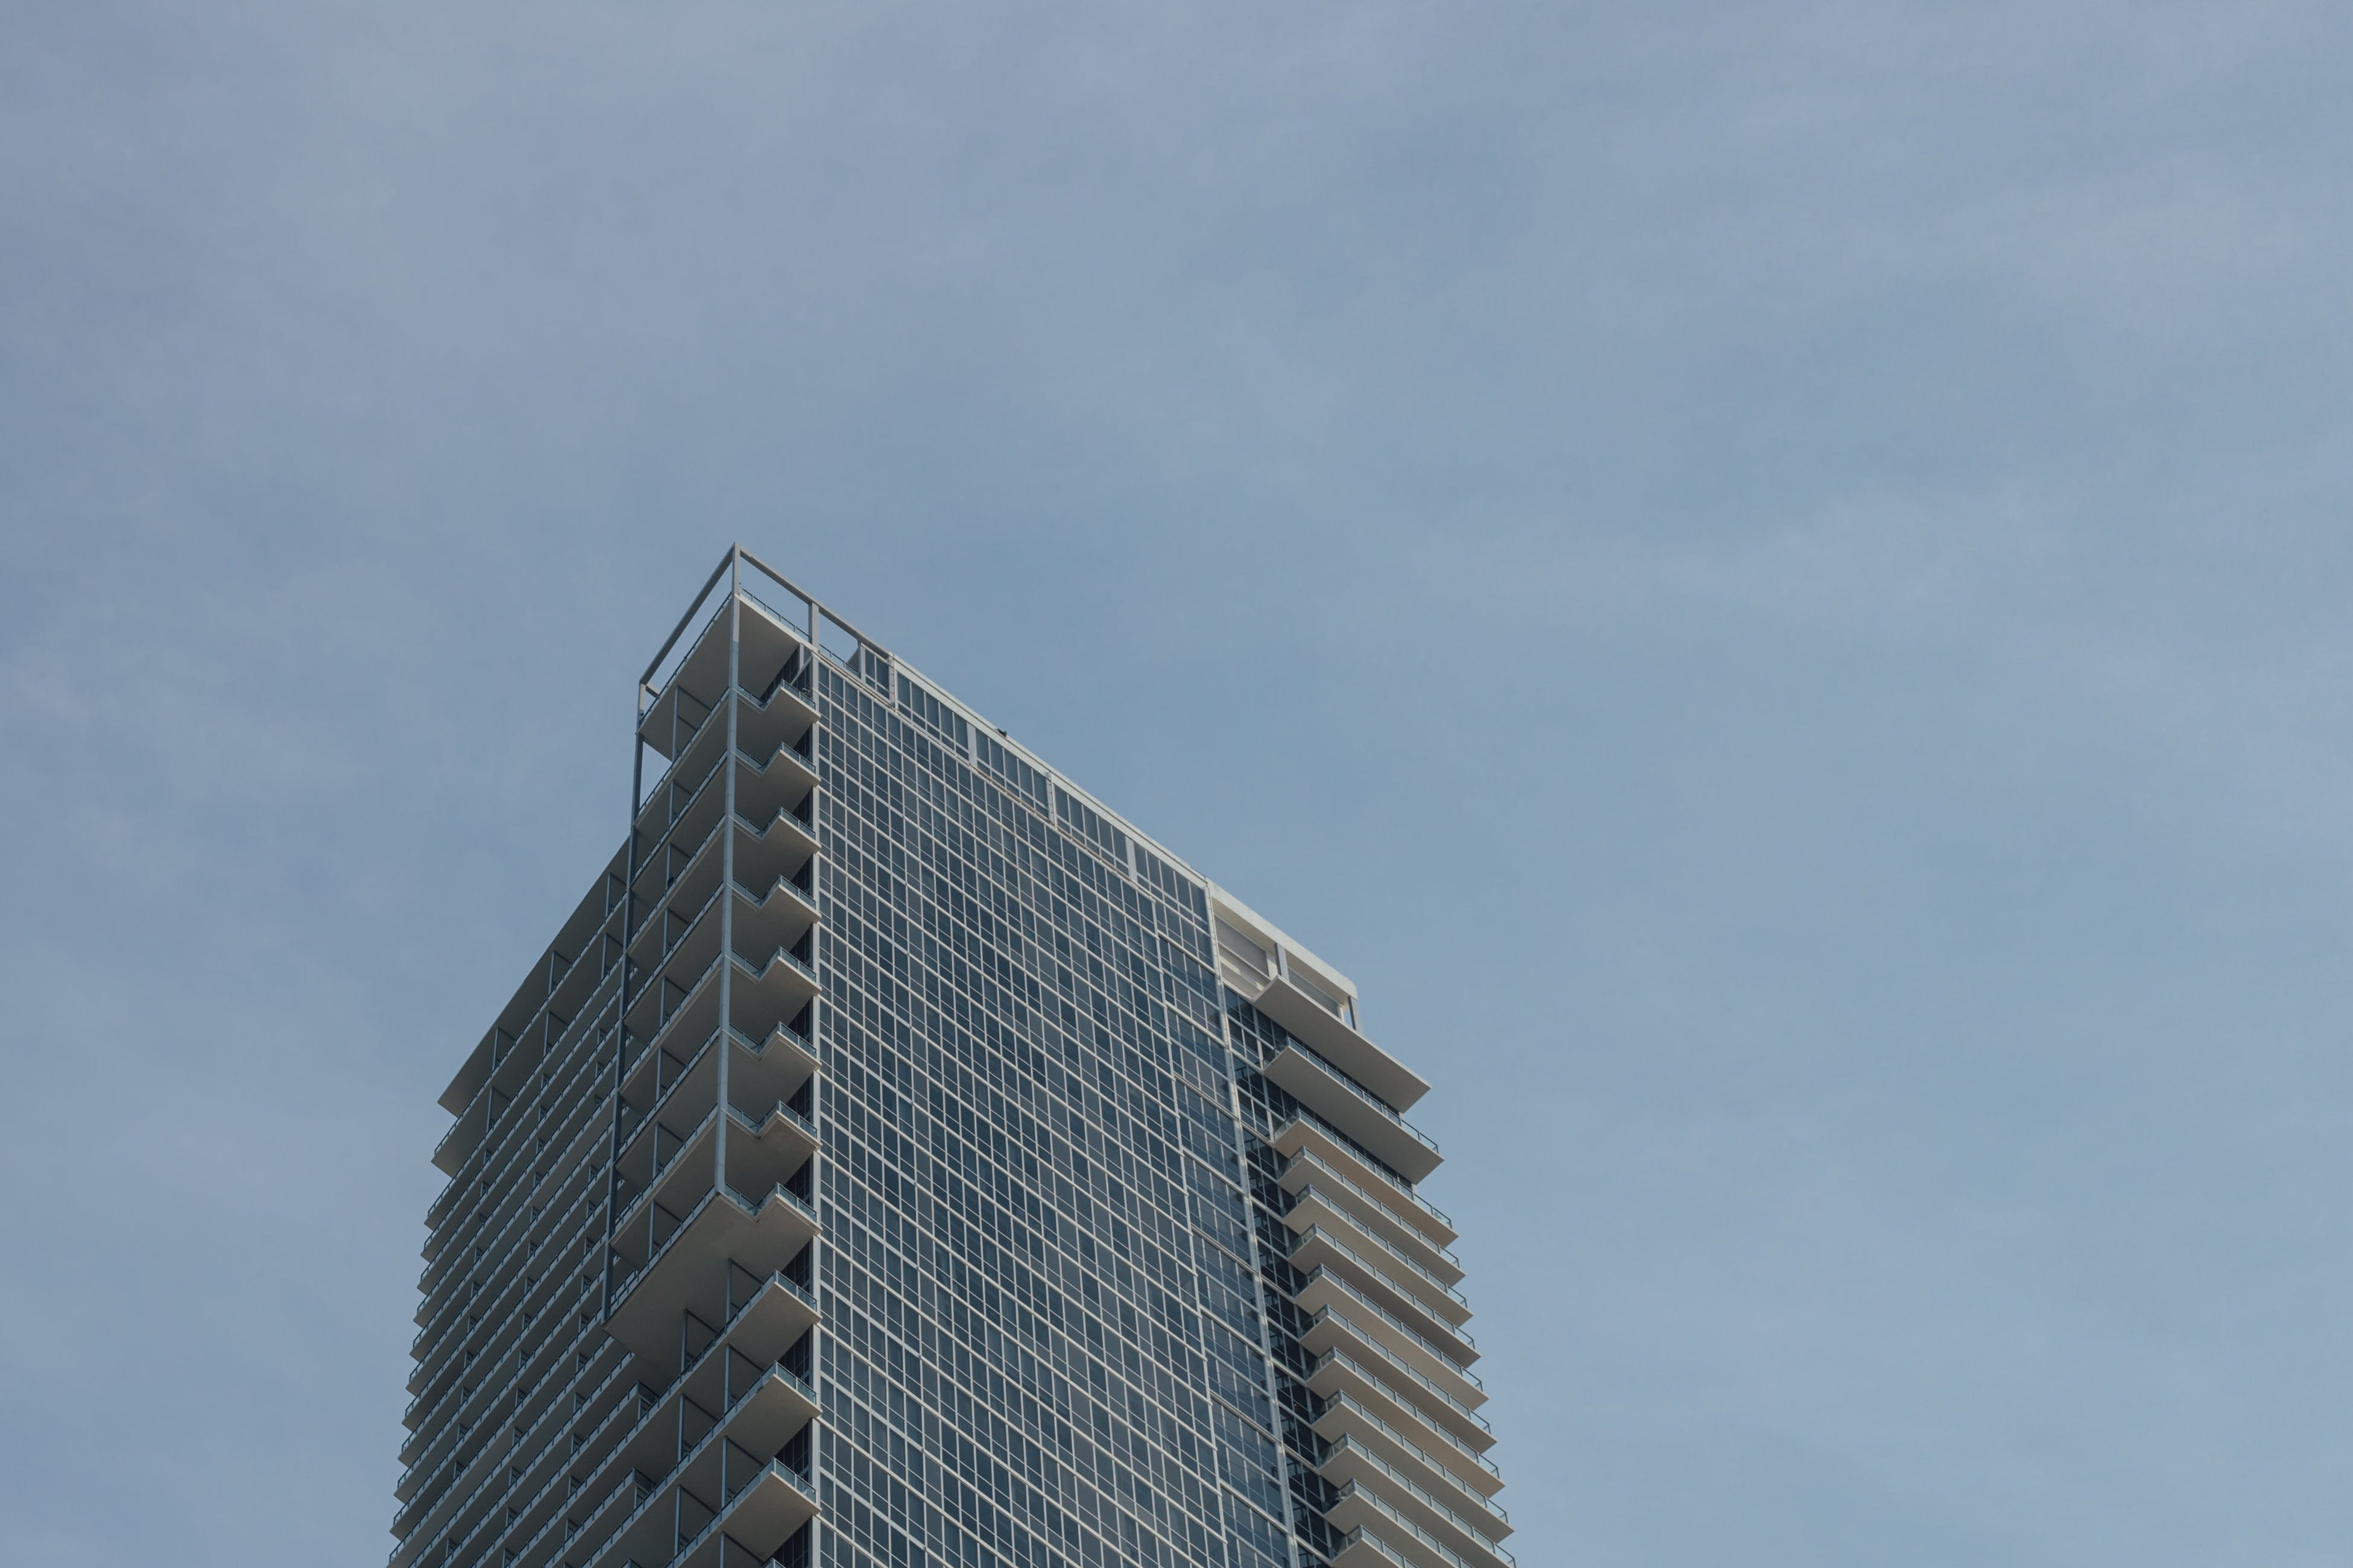 Low Angle Photo of Tower Building during Cloudy Sky